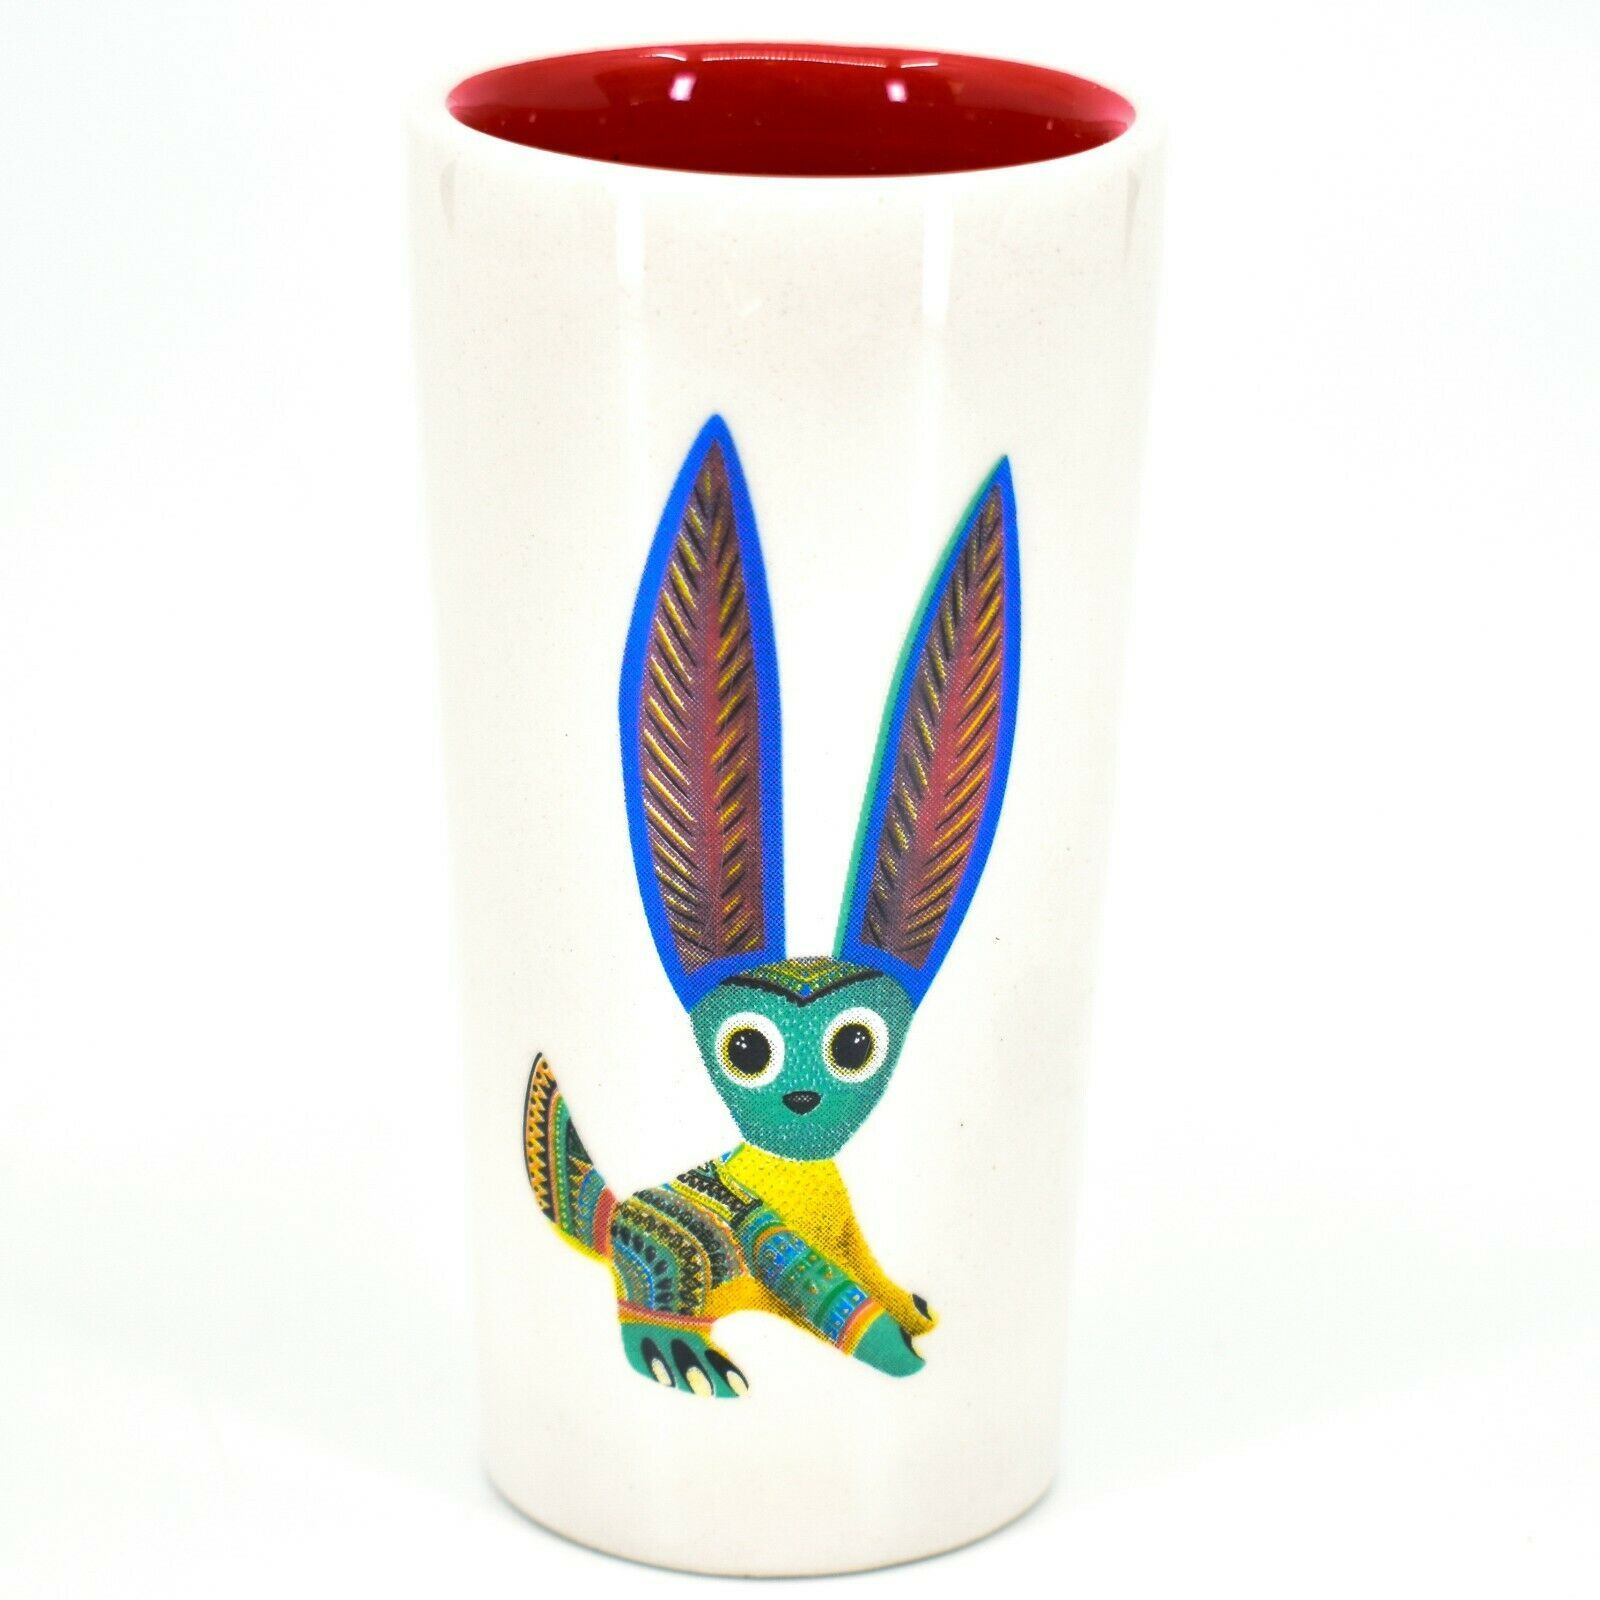 Jack Rabbit Alebrije Printed Ceramic Tequila Shot Glass Shooter Made in Mexico